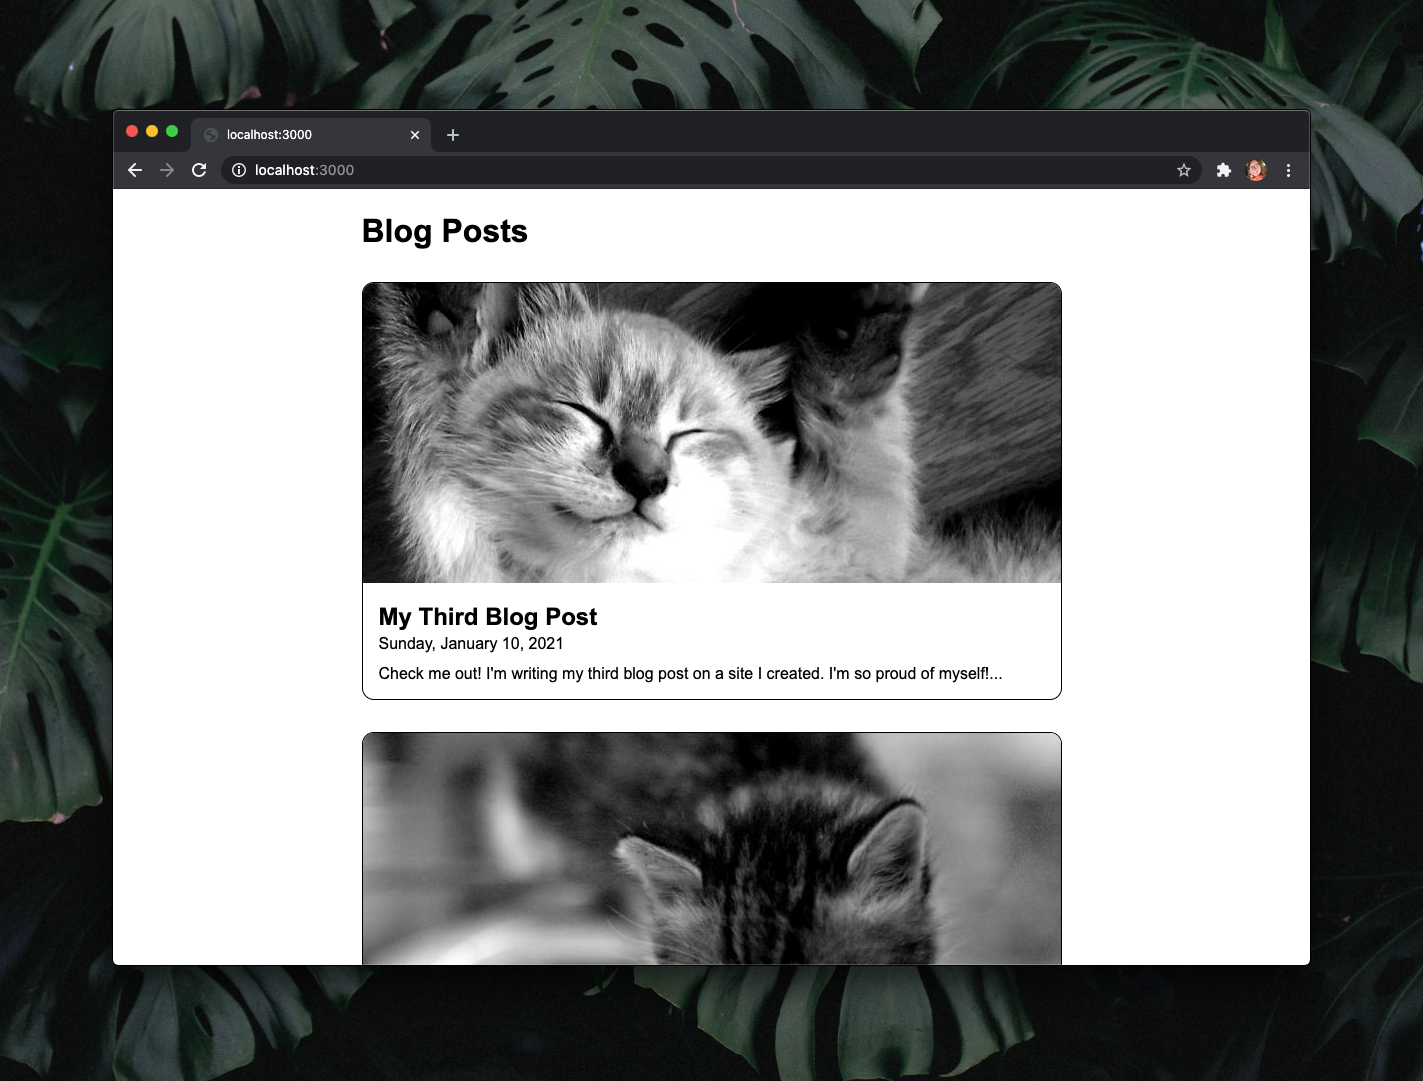 Window showing the home page and list of blog posts.